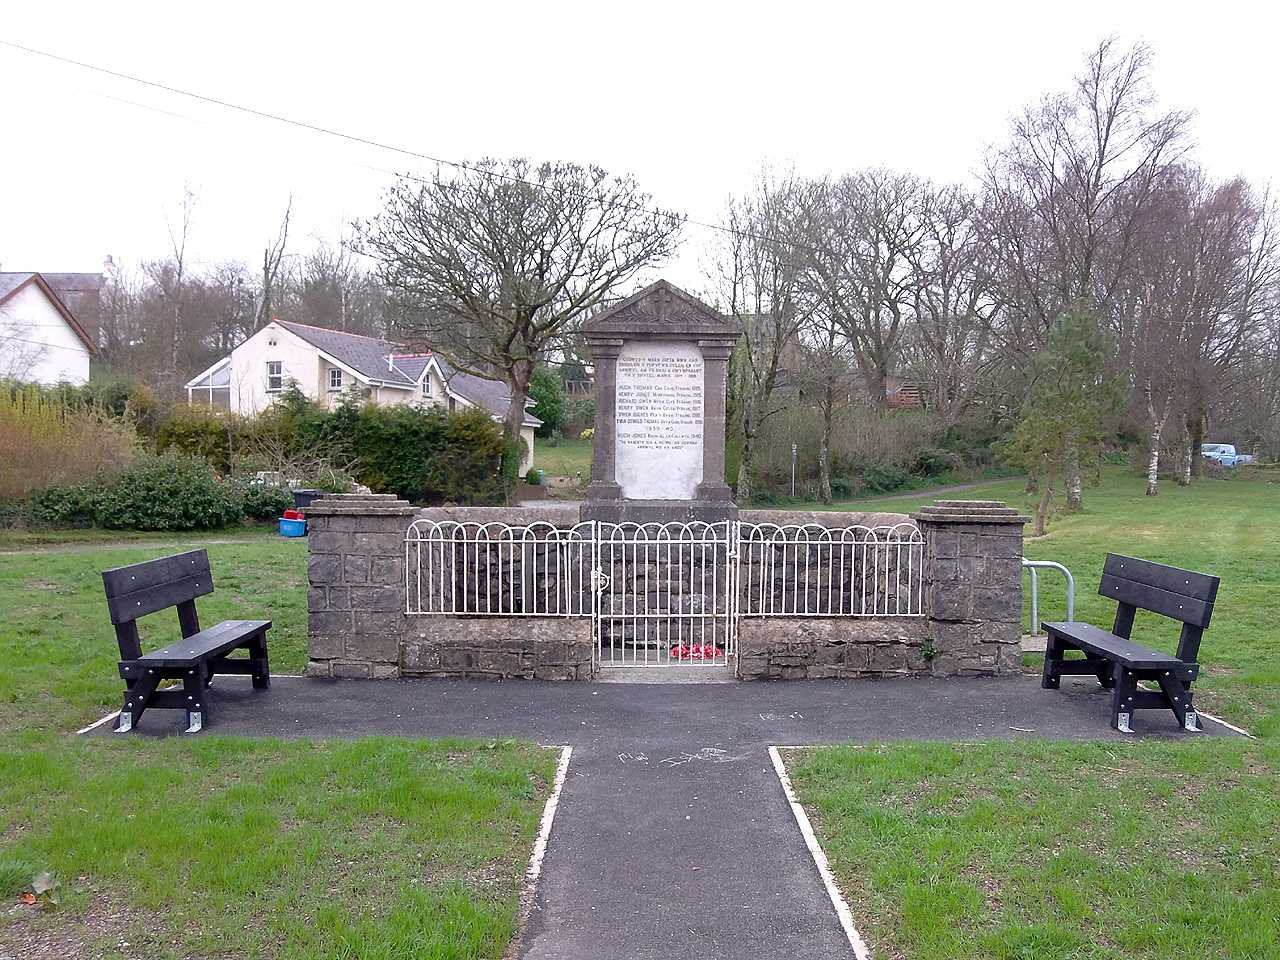 Anglesey, Talwrn War Memorial and Village Green